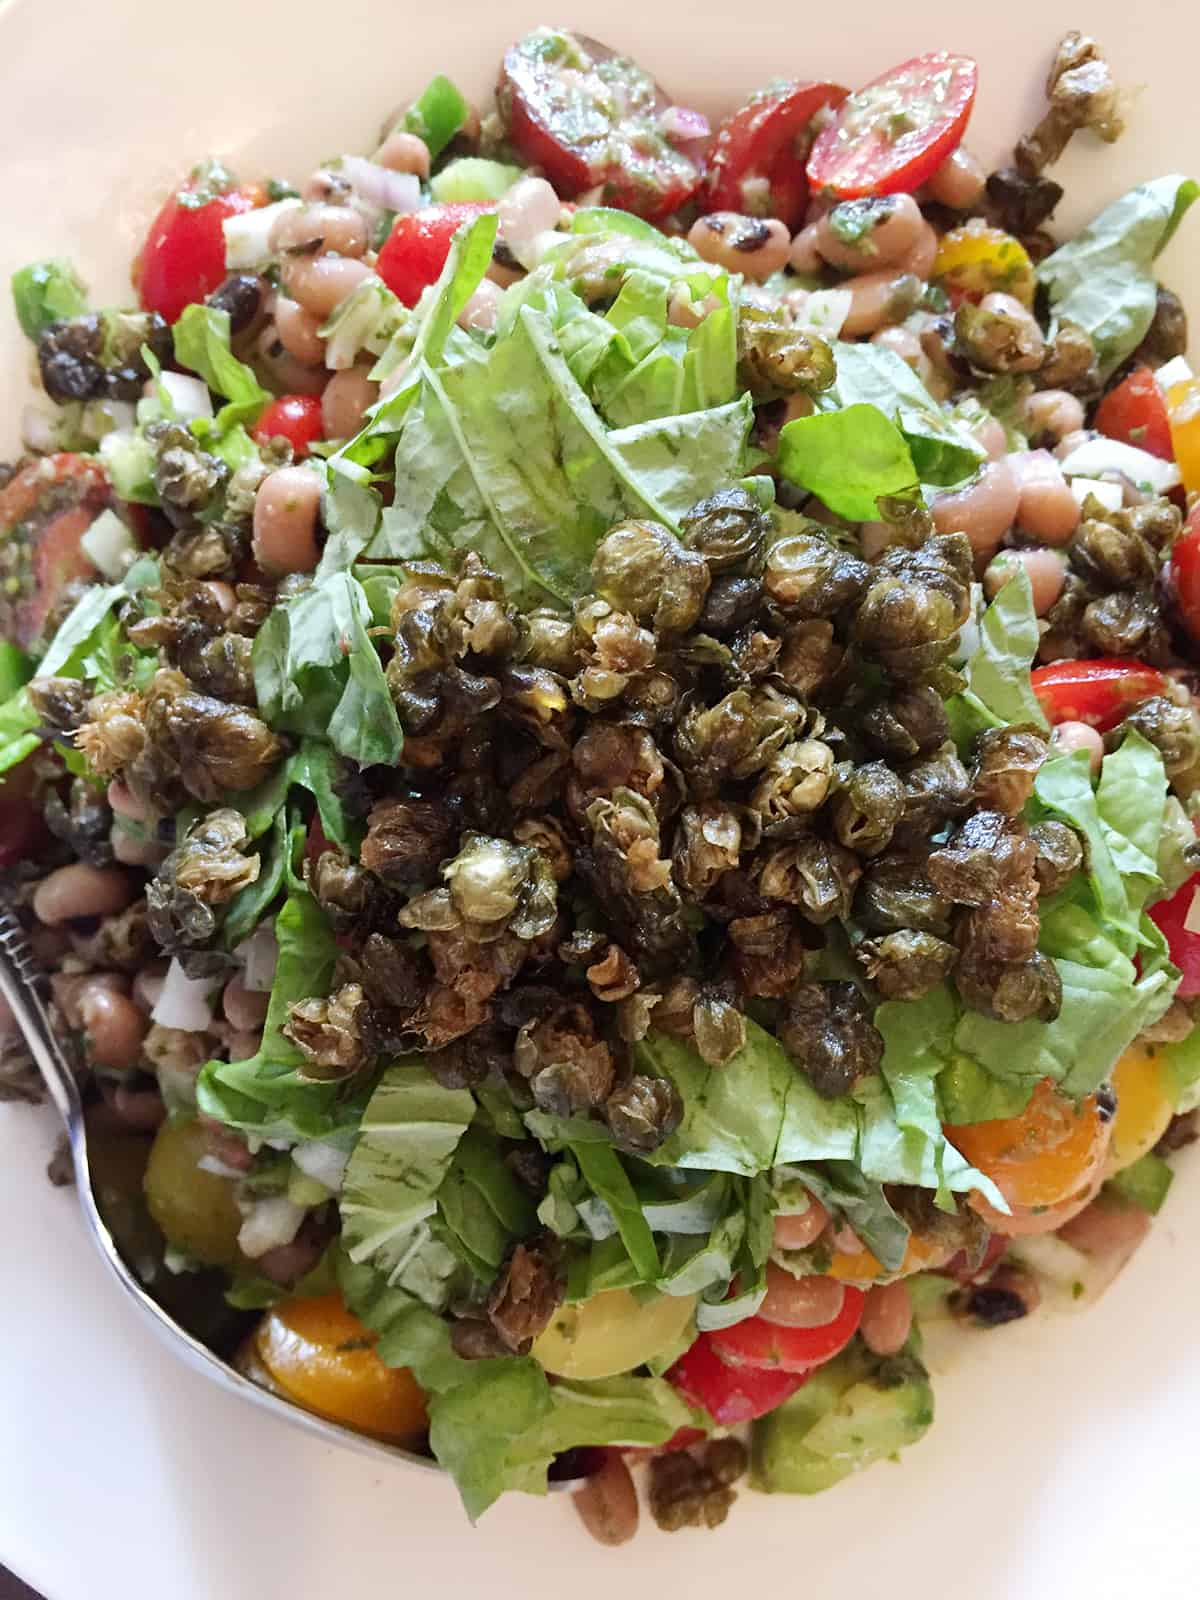 Canned Black-Eyed Peas, Tomato & Crispy Capers